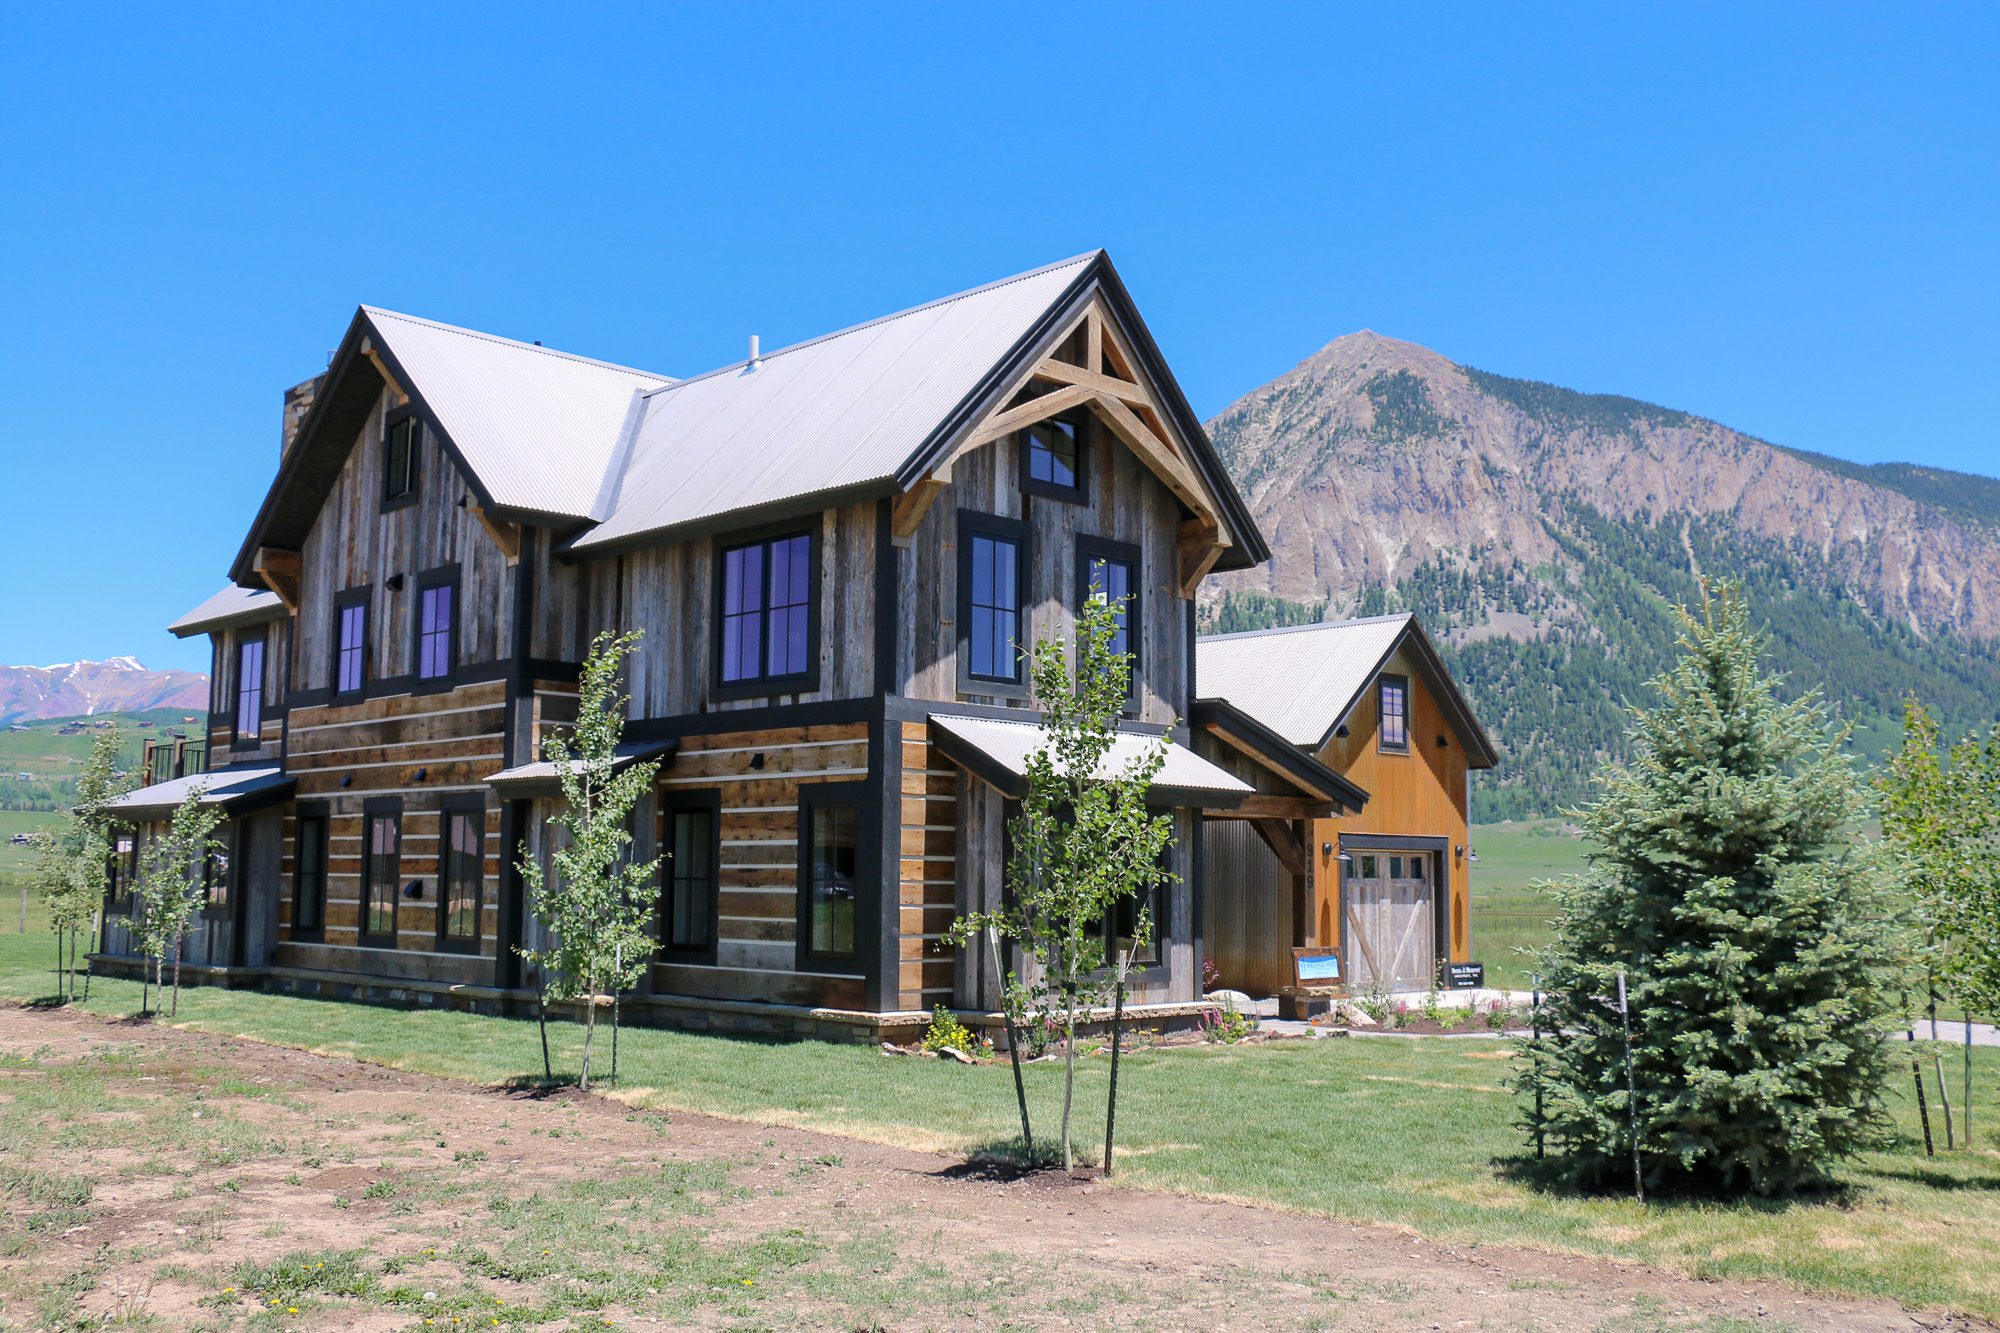 獨棟家庭住宅 為 出售 在 Crested Butte Newest Luxury Home 919 Belleview Avenue Crested Butte, 科羅拉多州, 81224 美國